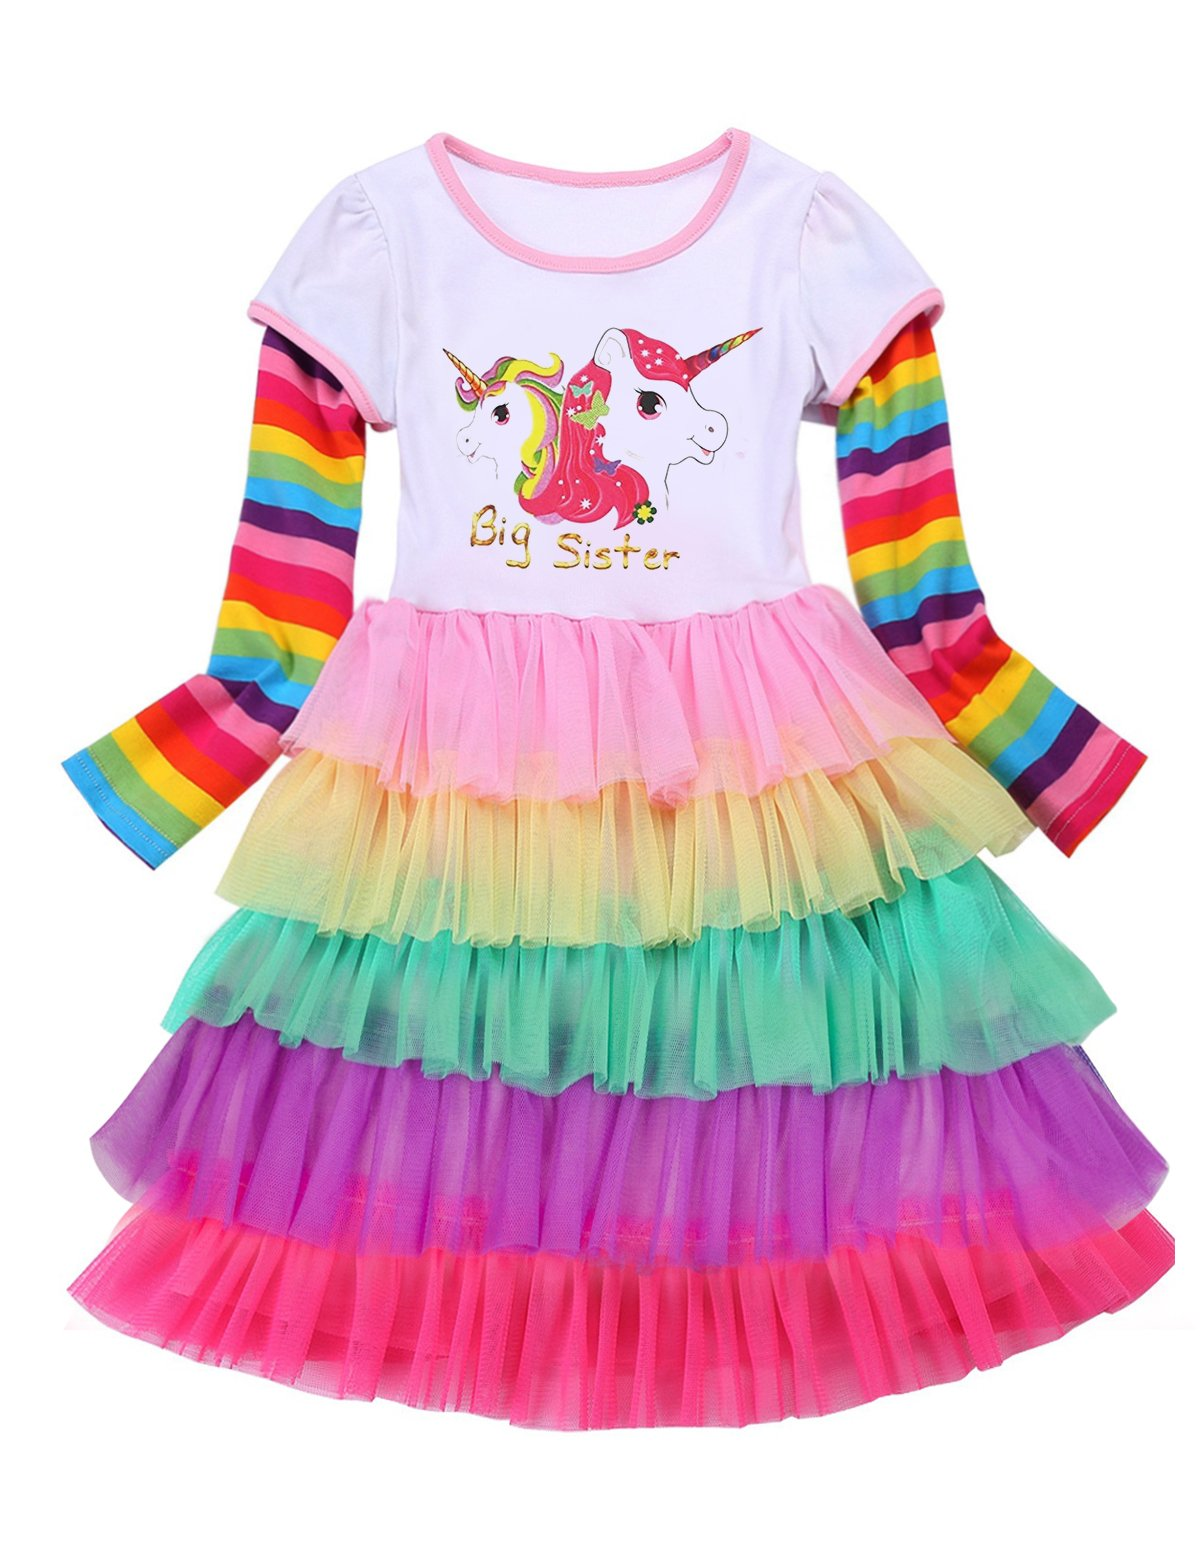 5 Year Old Unicorn Girl Dress Fall Clothes for BigSister2,4-5 Years(Size 120)